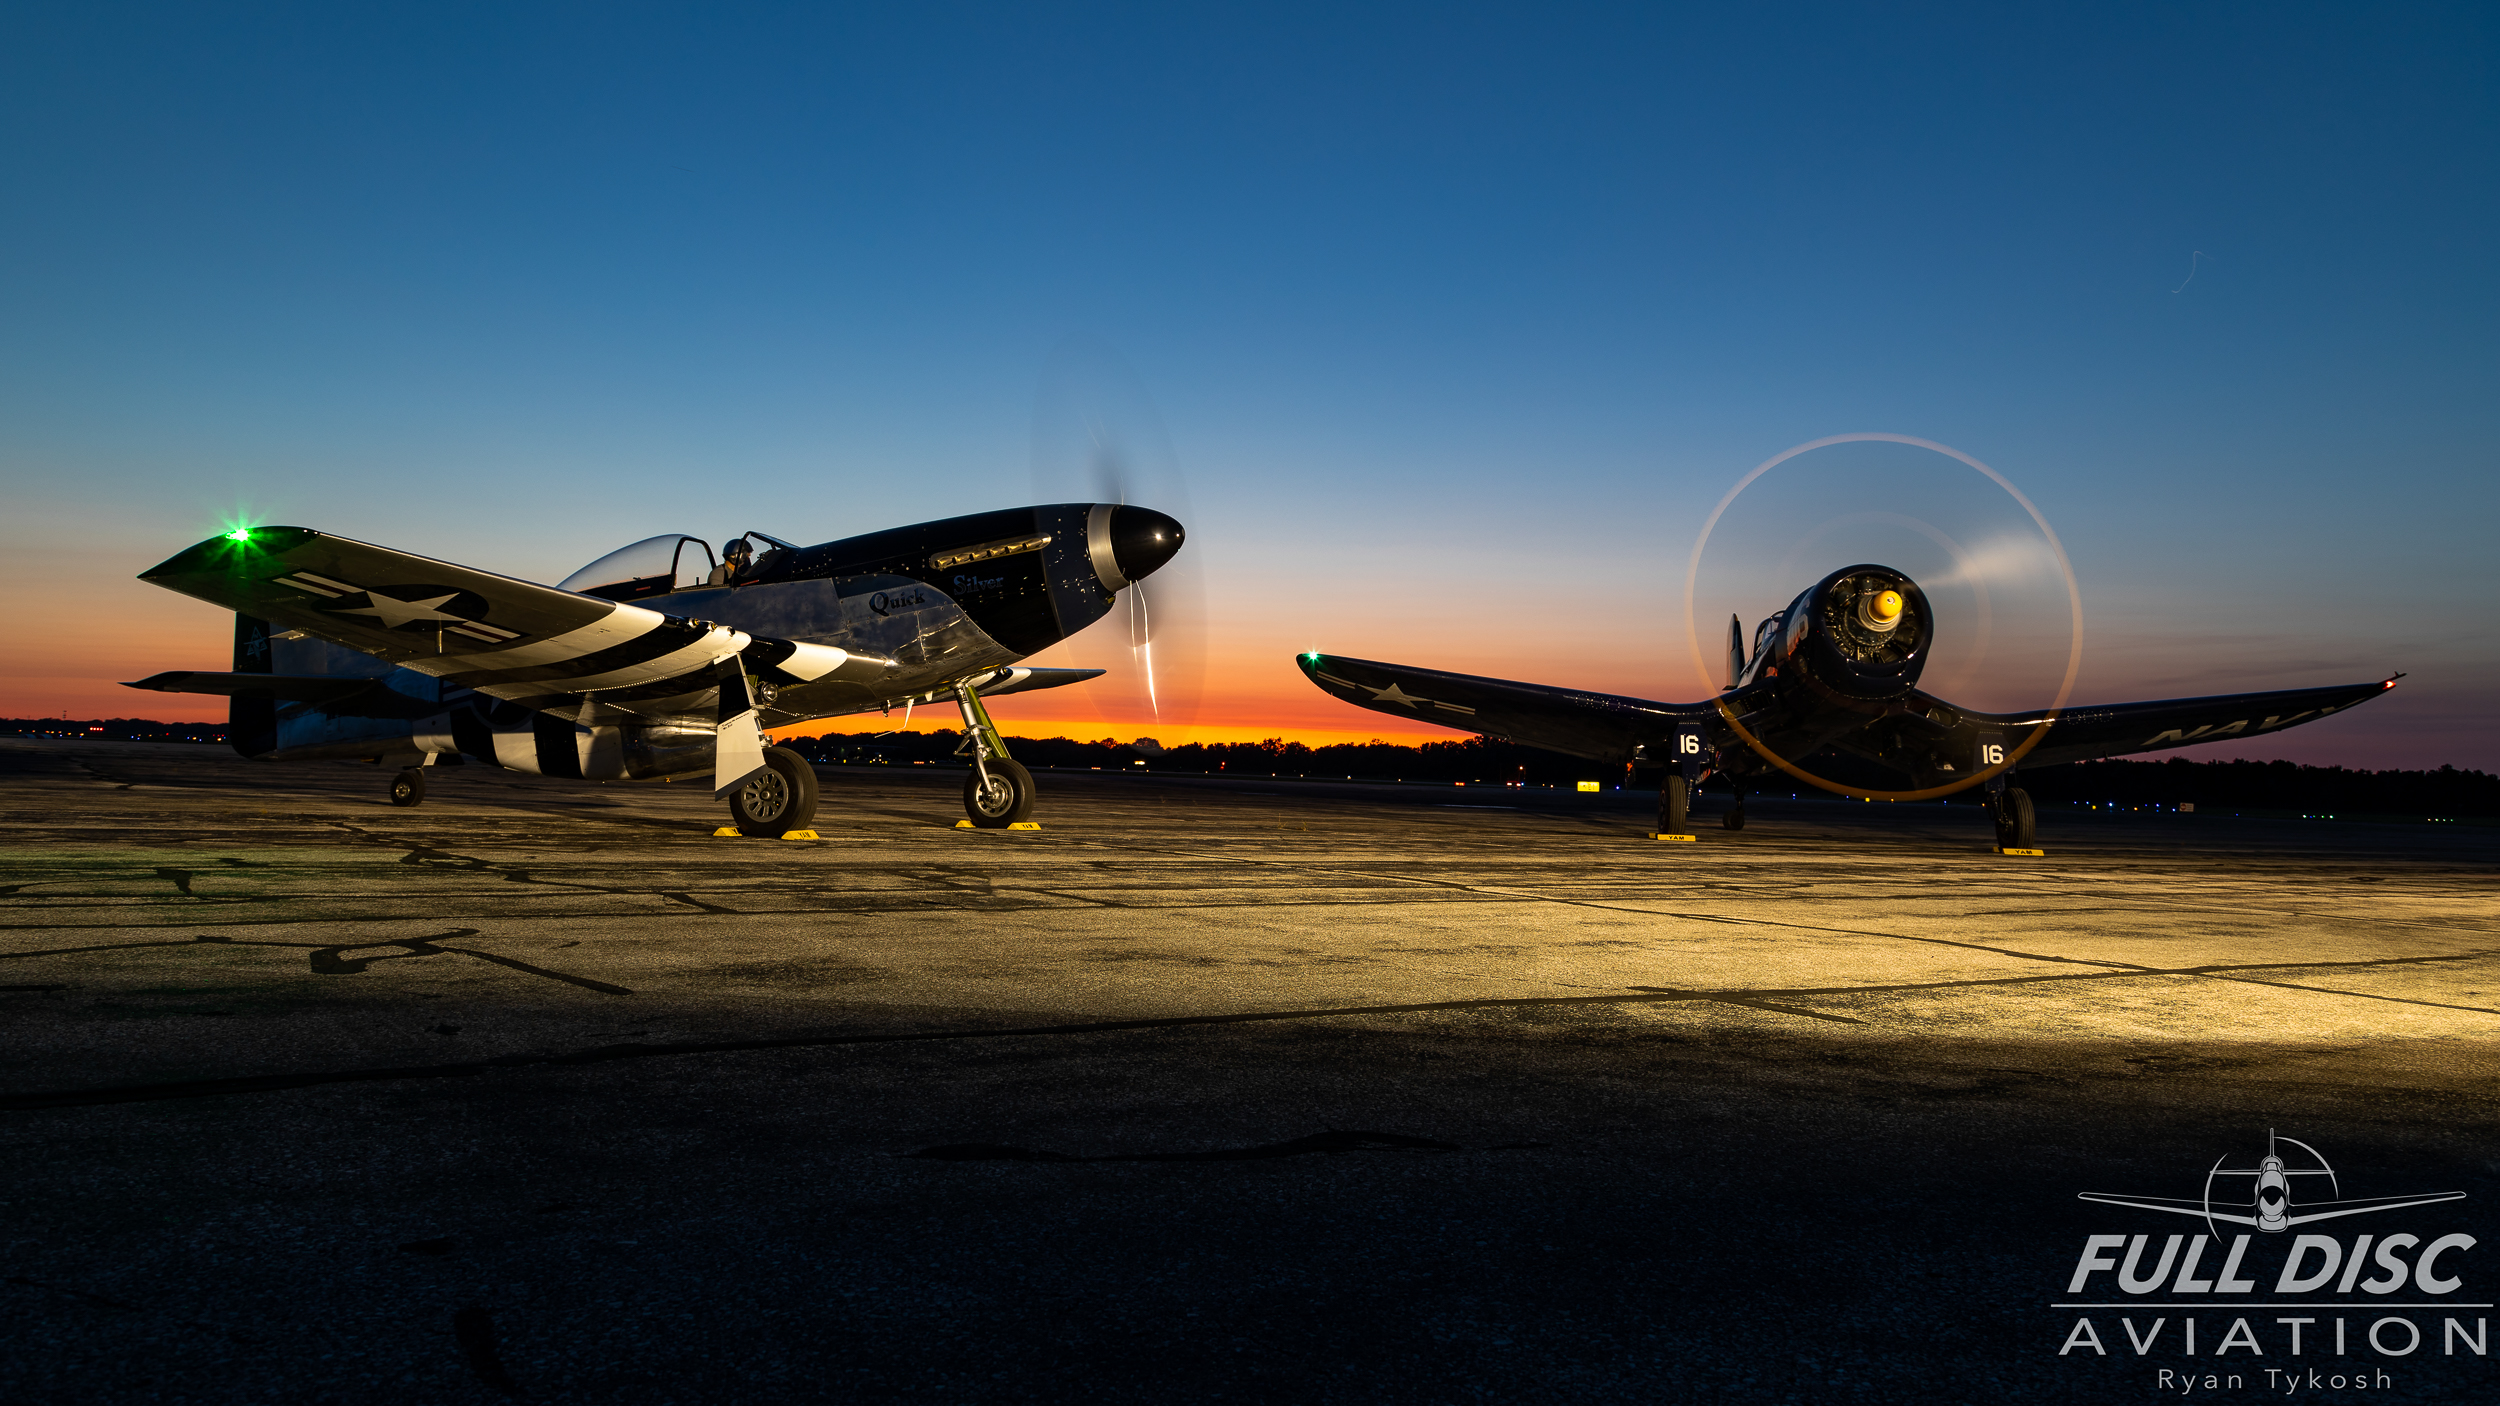 ClassOf45_FullDiscAviation_RyanTykosh_August 01, 2019_05.jpg